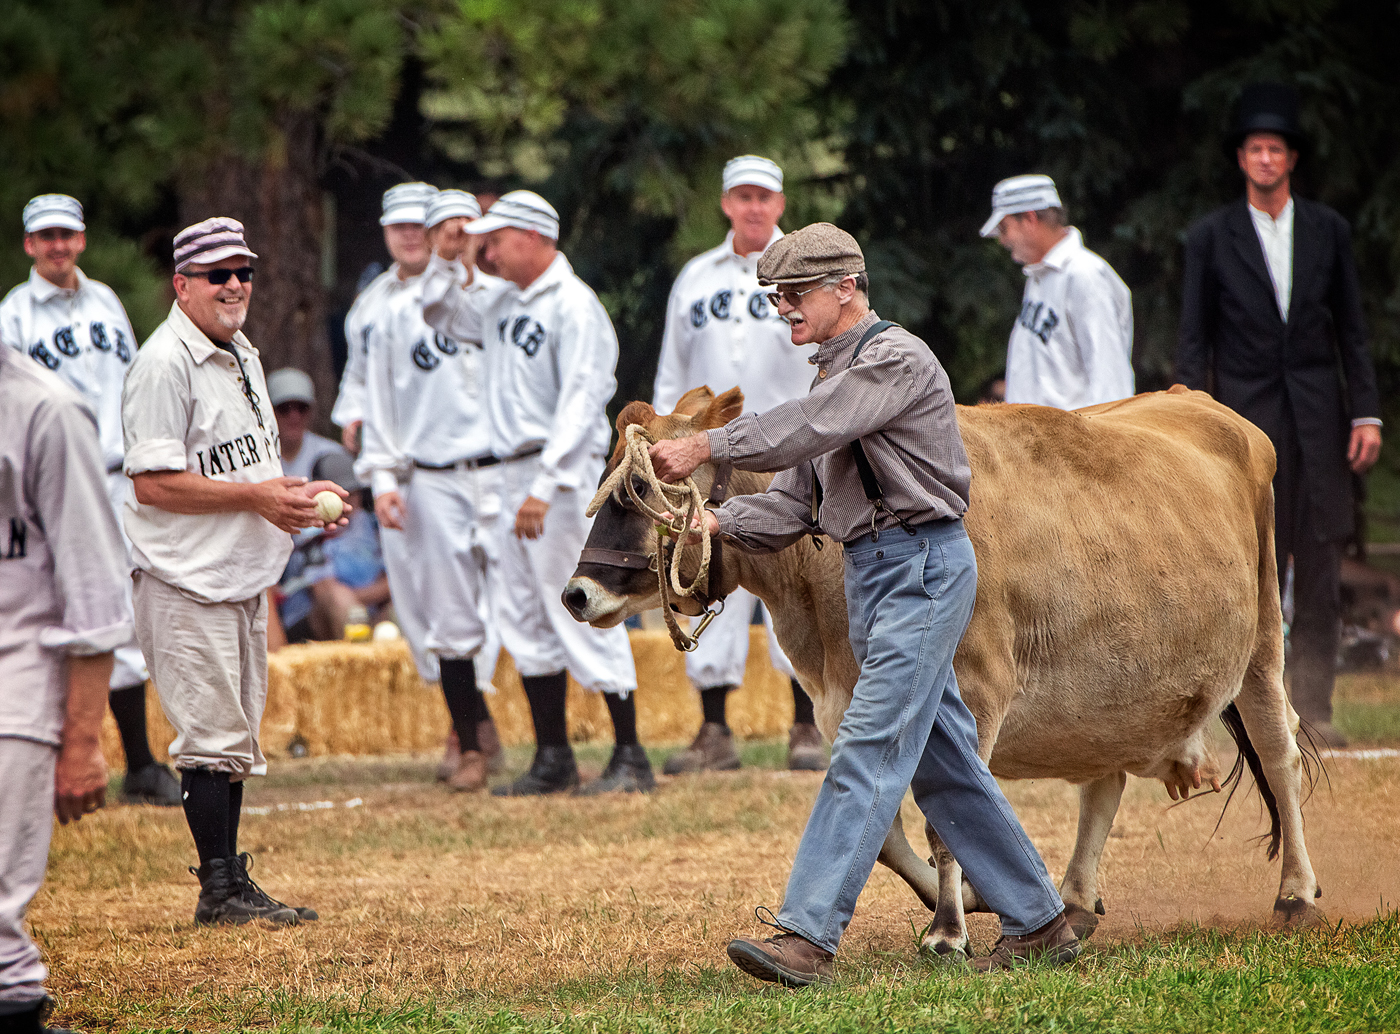 Baseball team waiting for cow to be lead off the field